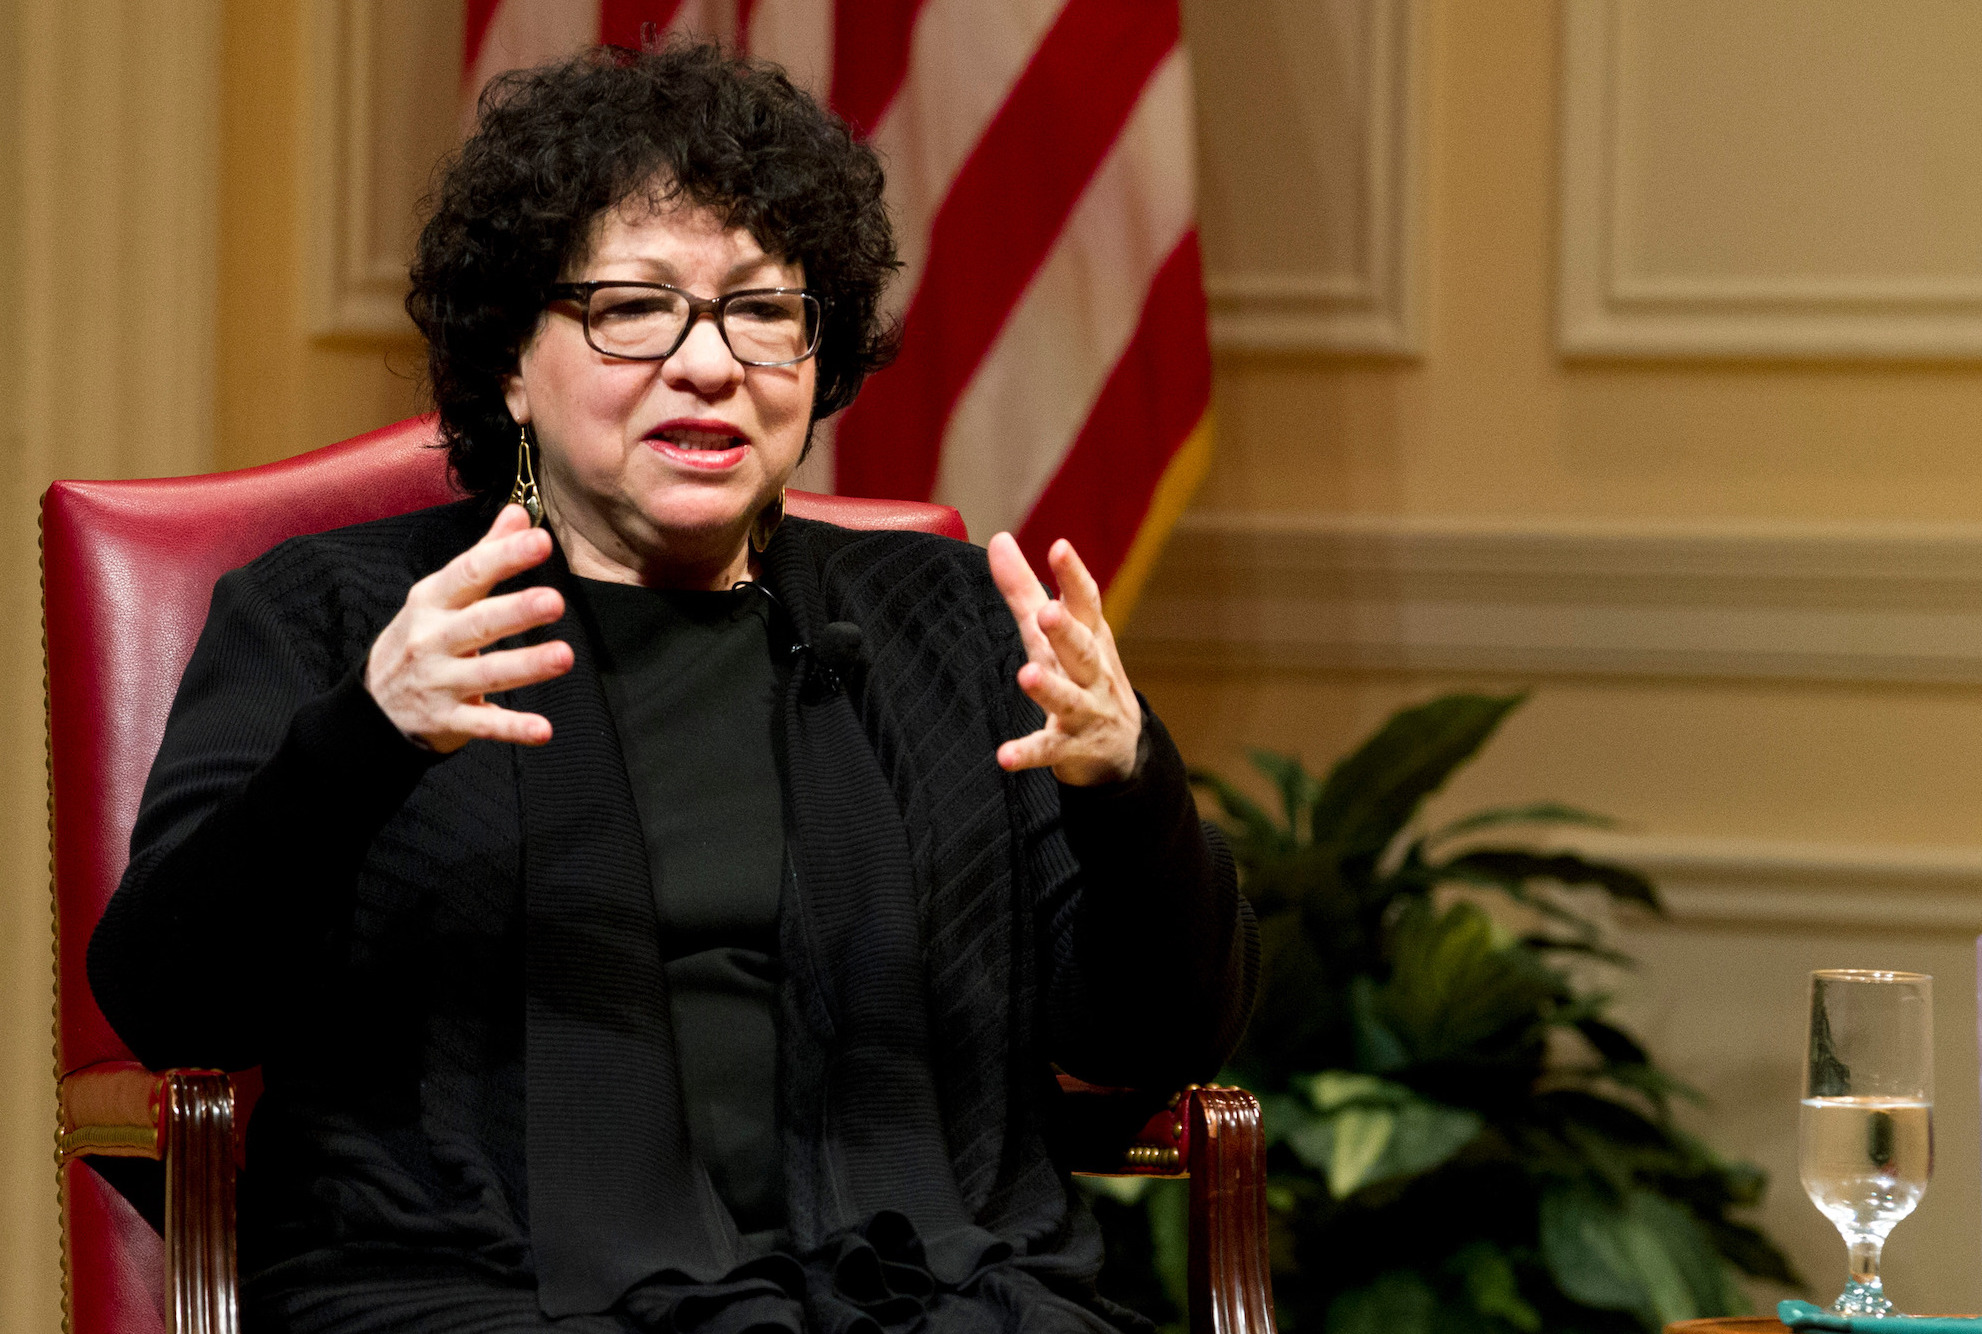 Sotomayor Accuses Supreme Court of Granting Favors to Trump in Blistering Dissent